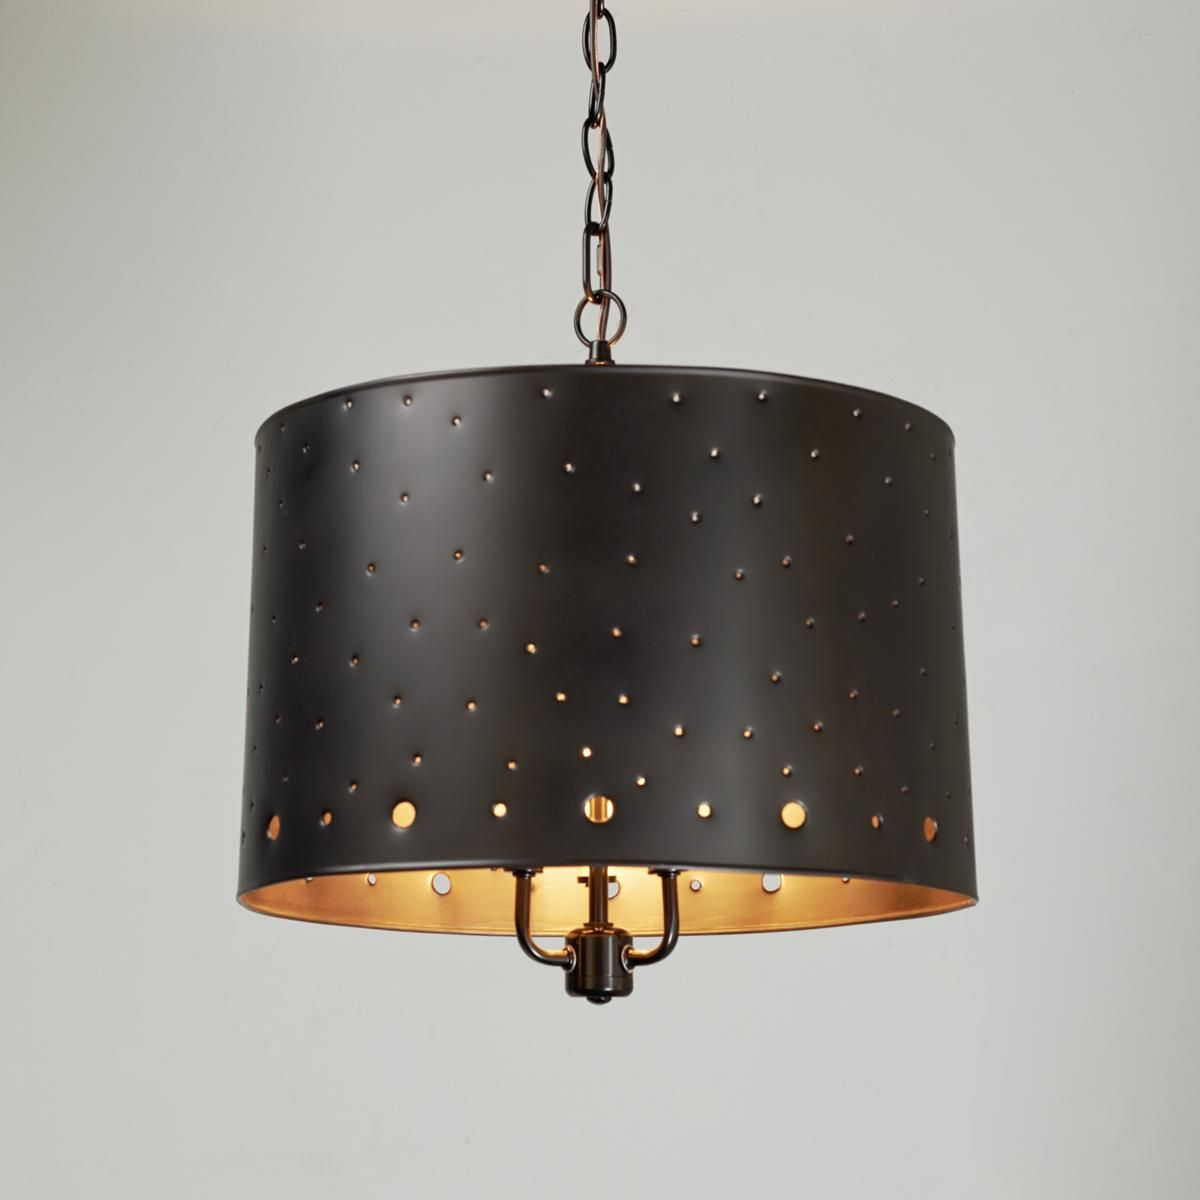 Starlight Drum Shade Pendant Light-Maybe Over A Kitchen